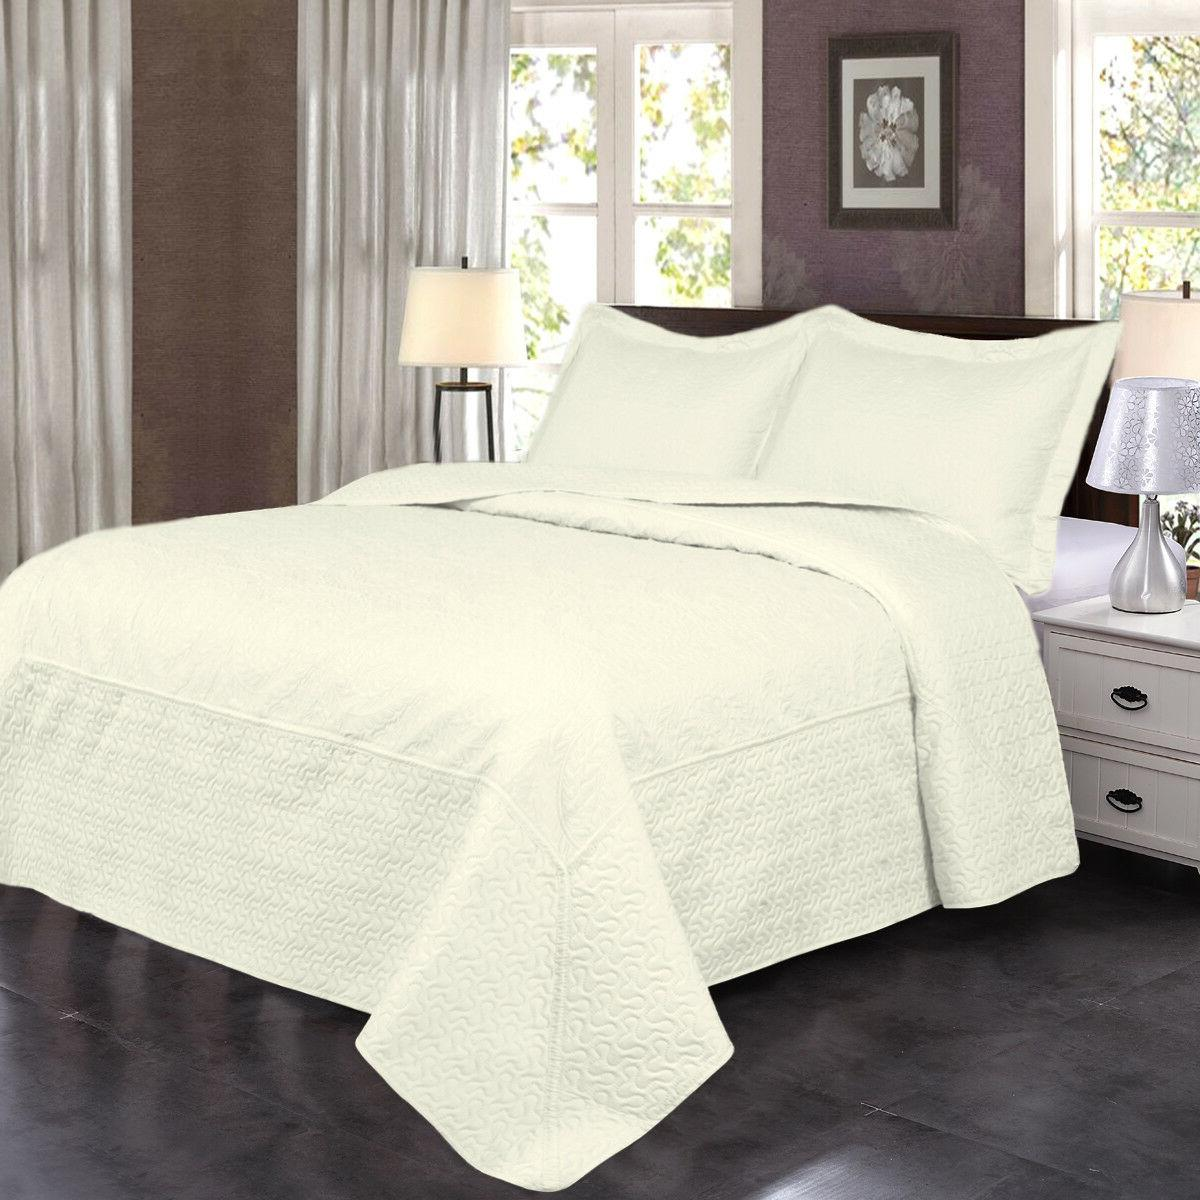 3 Solid Quilt Set & Lightweight Bedspread